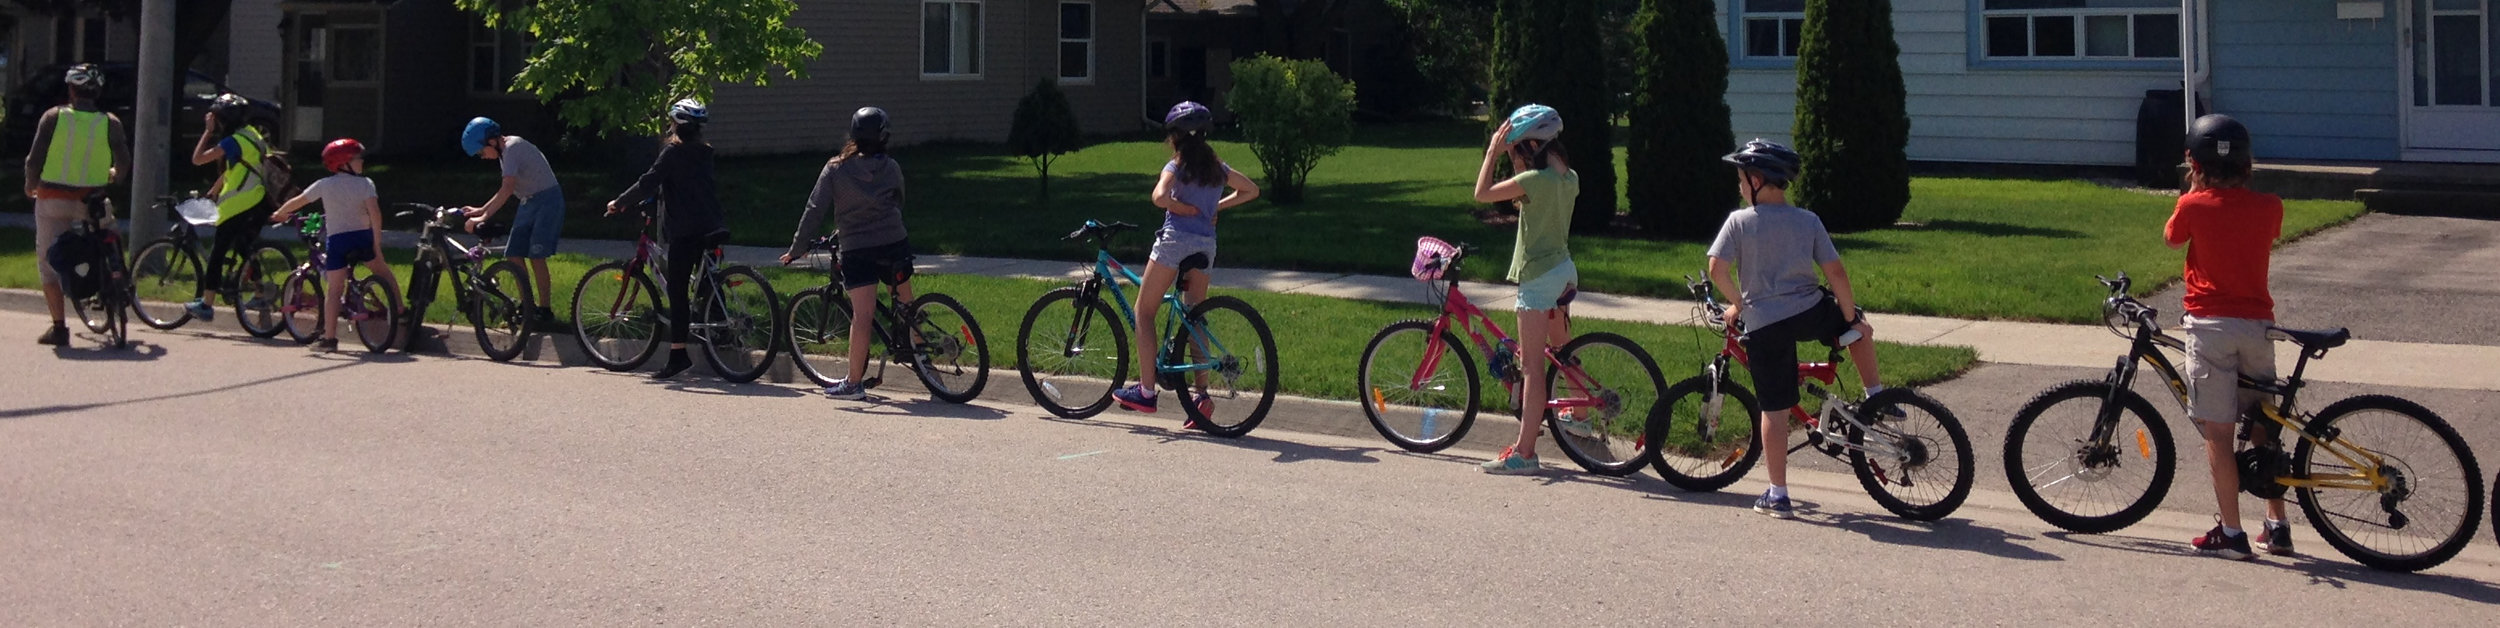 We offer comprehensive bike training: Grade 5 and 6 students participate in 6 modules to help them ride confidently and safely   Find out more